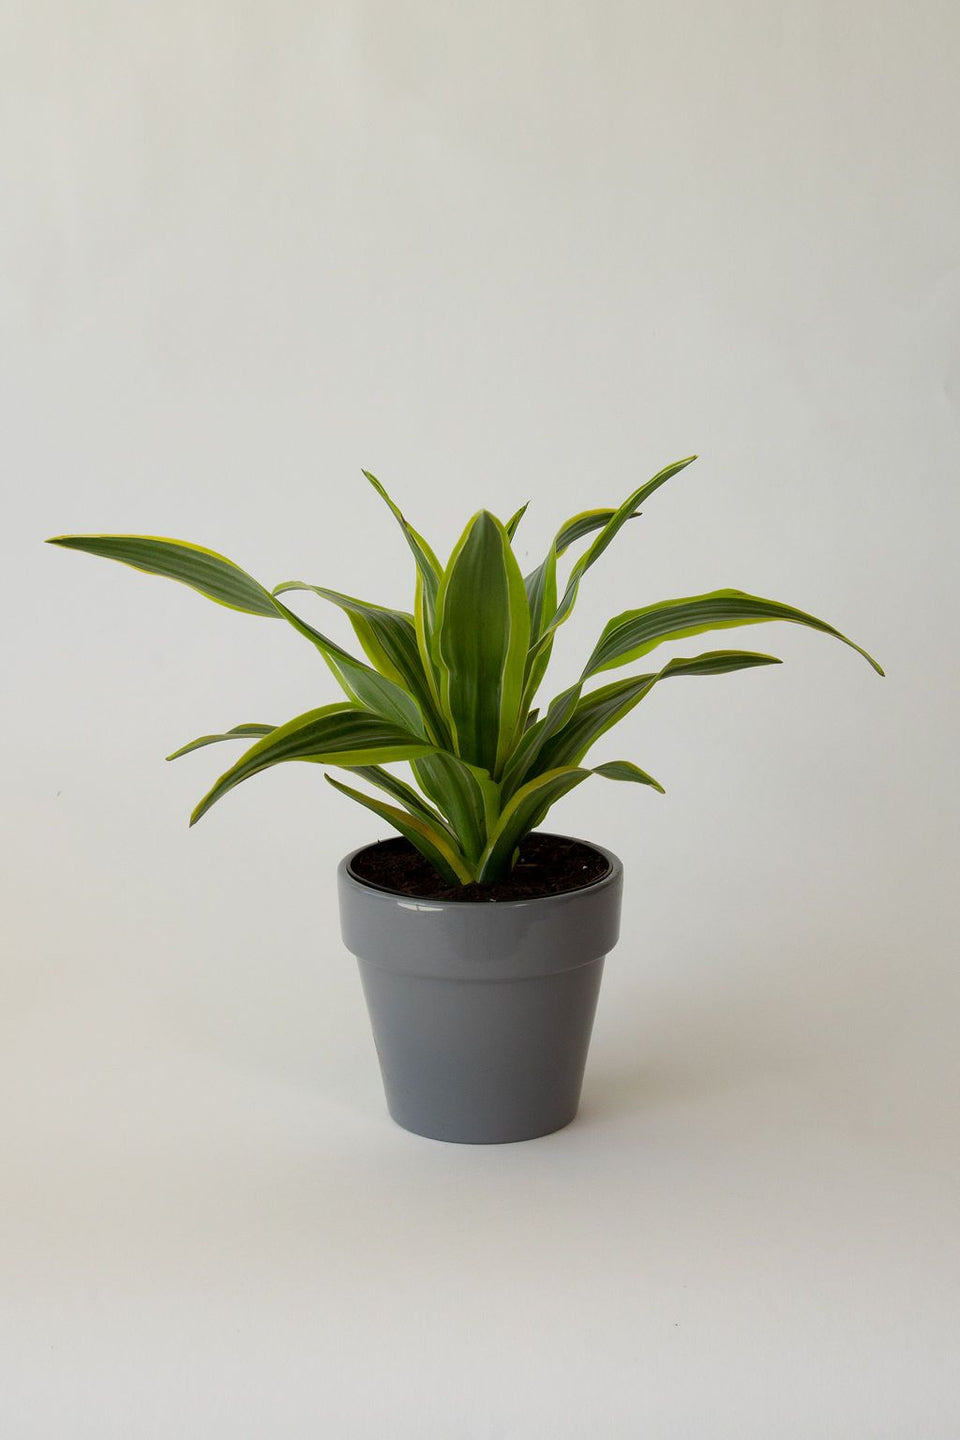 Lil' Bit Dracaena Warneckii Lemon Lime